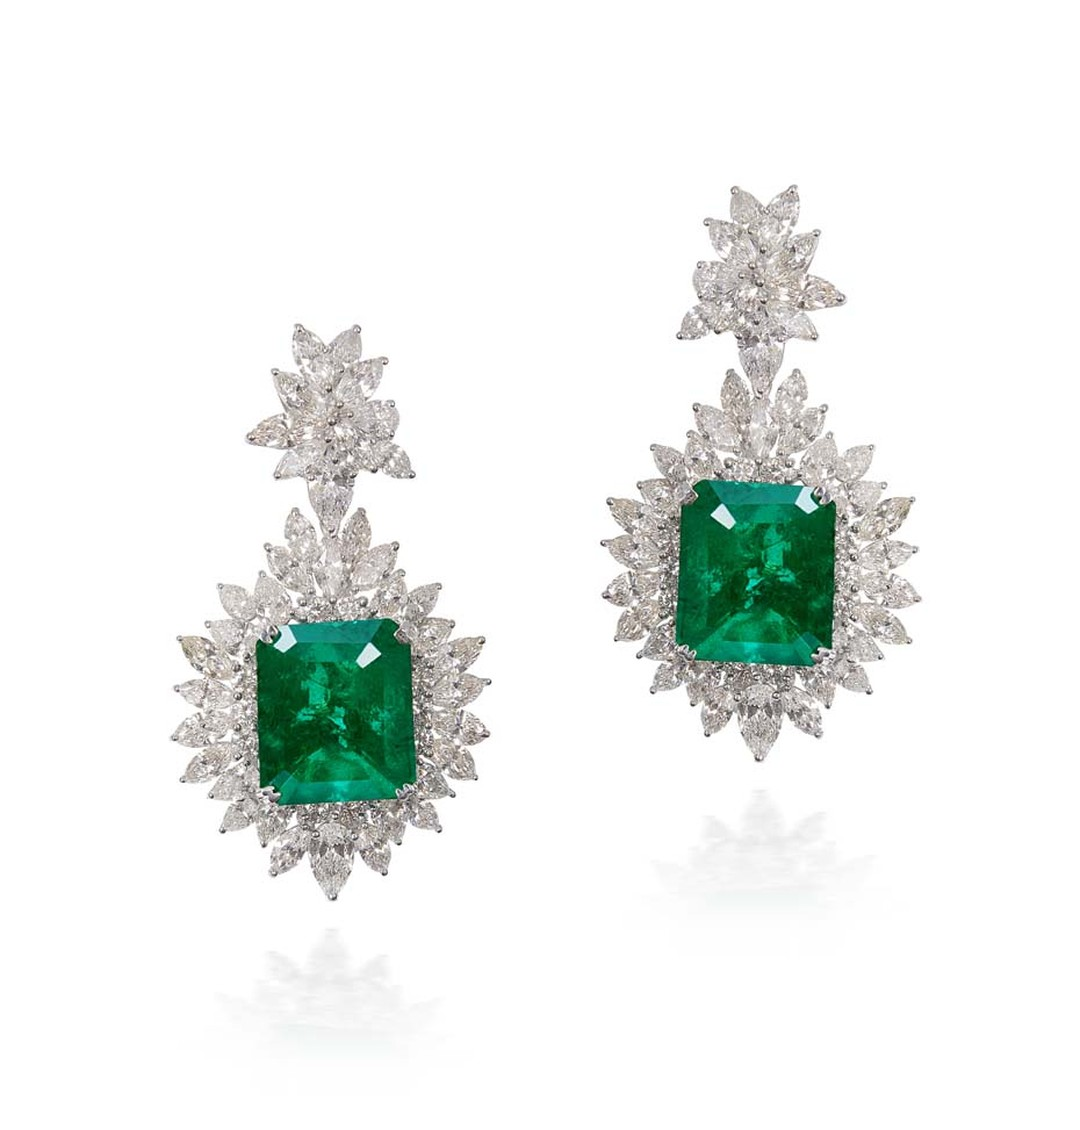 Lot 9, a pair of earrings by Talwarsons Jewellers with two extremely rare Gemfields emeralds as their centrepiece (estimate: INR 3,300,000 - 4,000,000; $55,000 - 67,000)